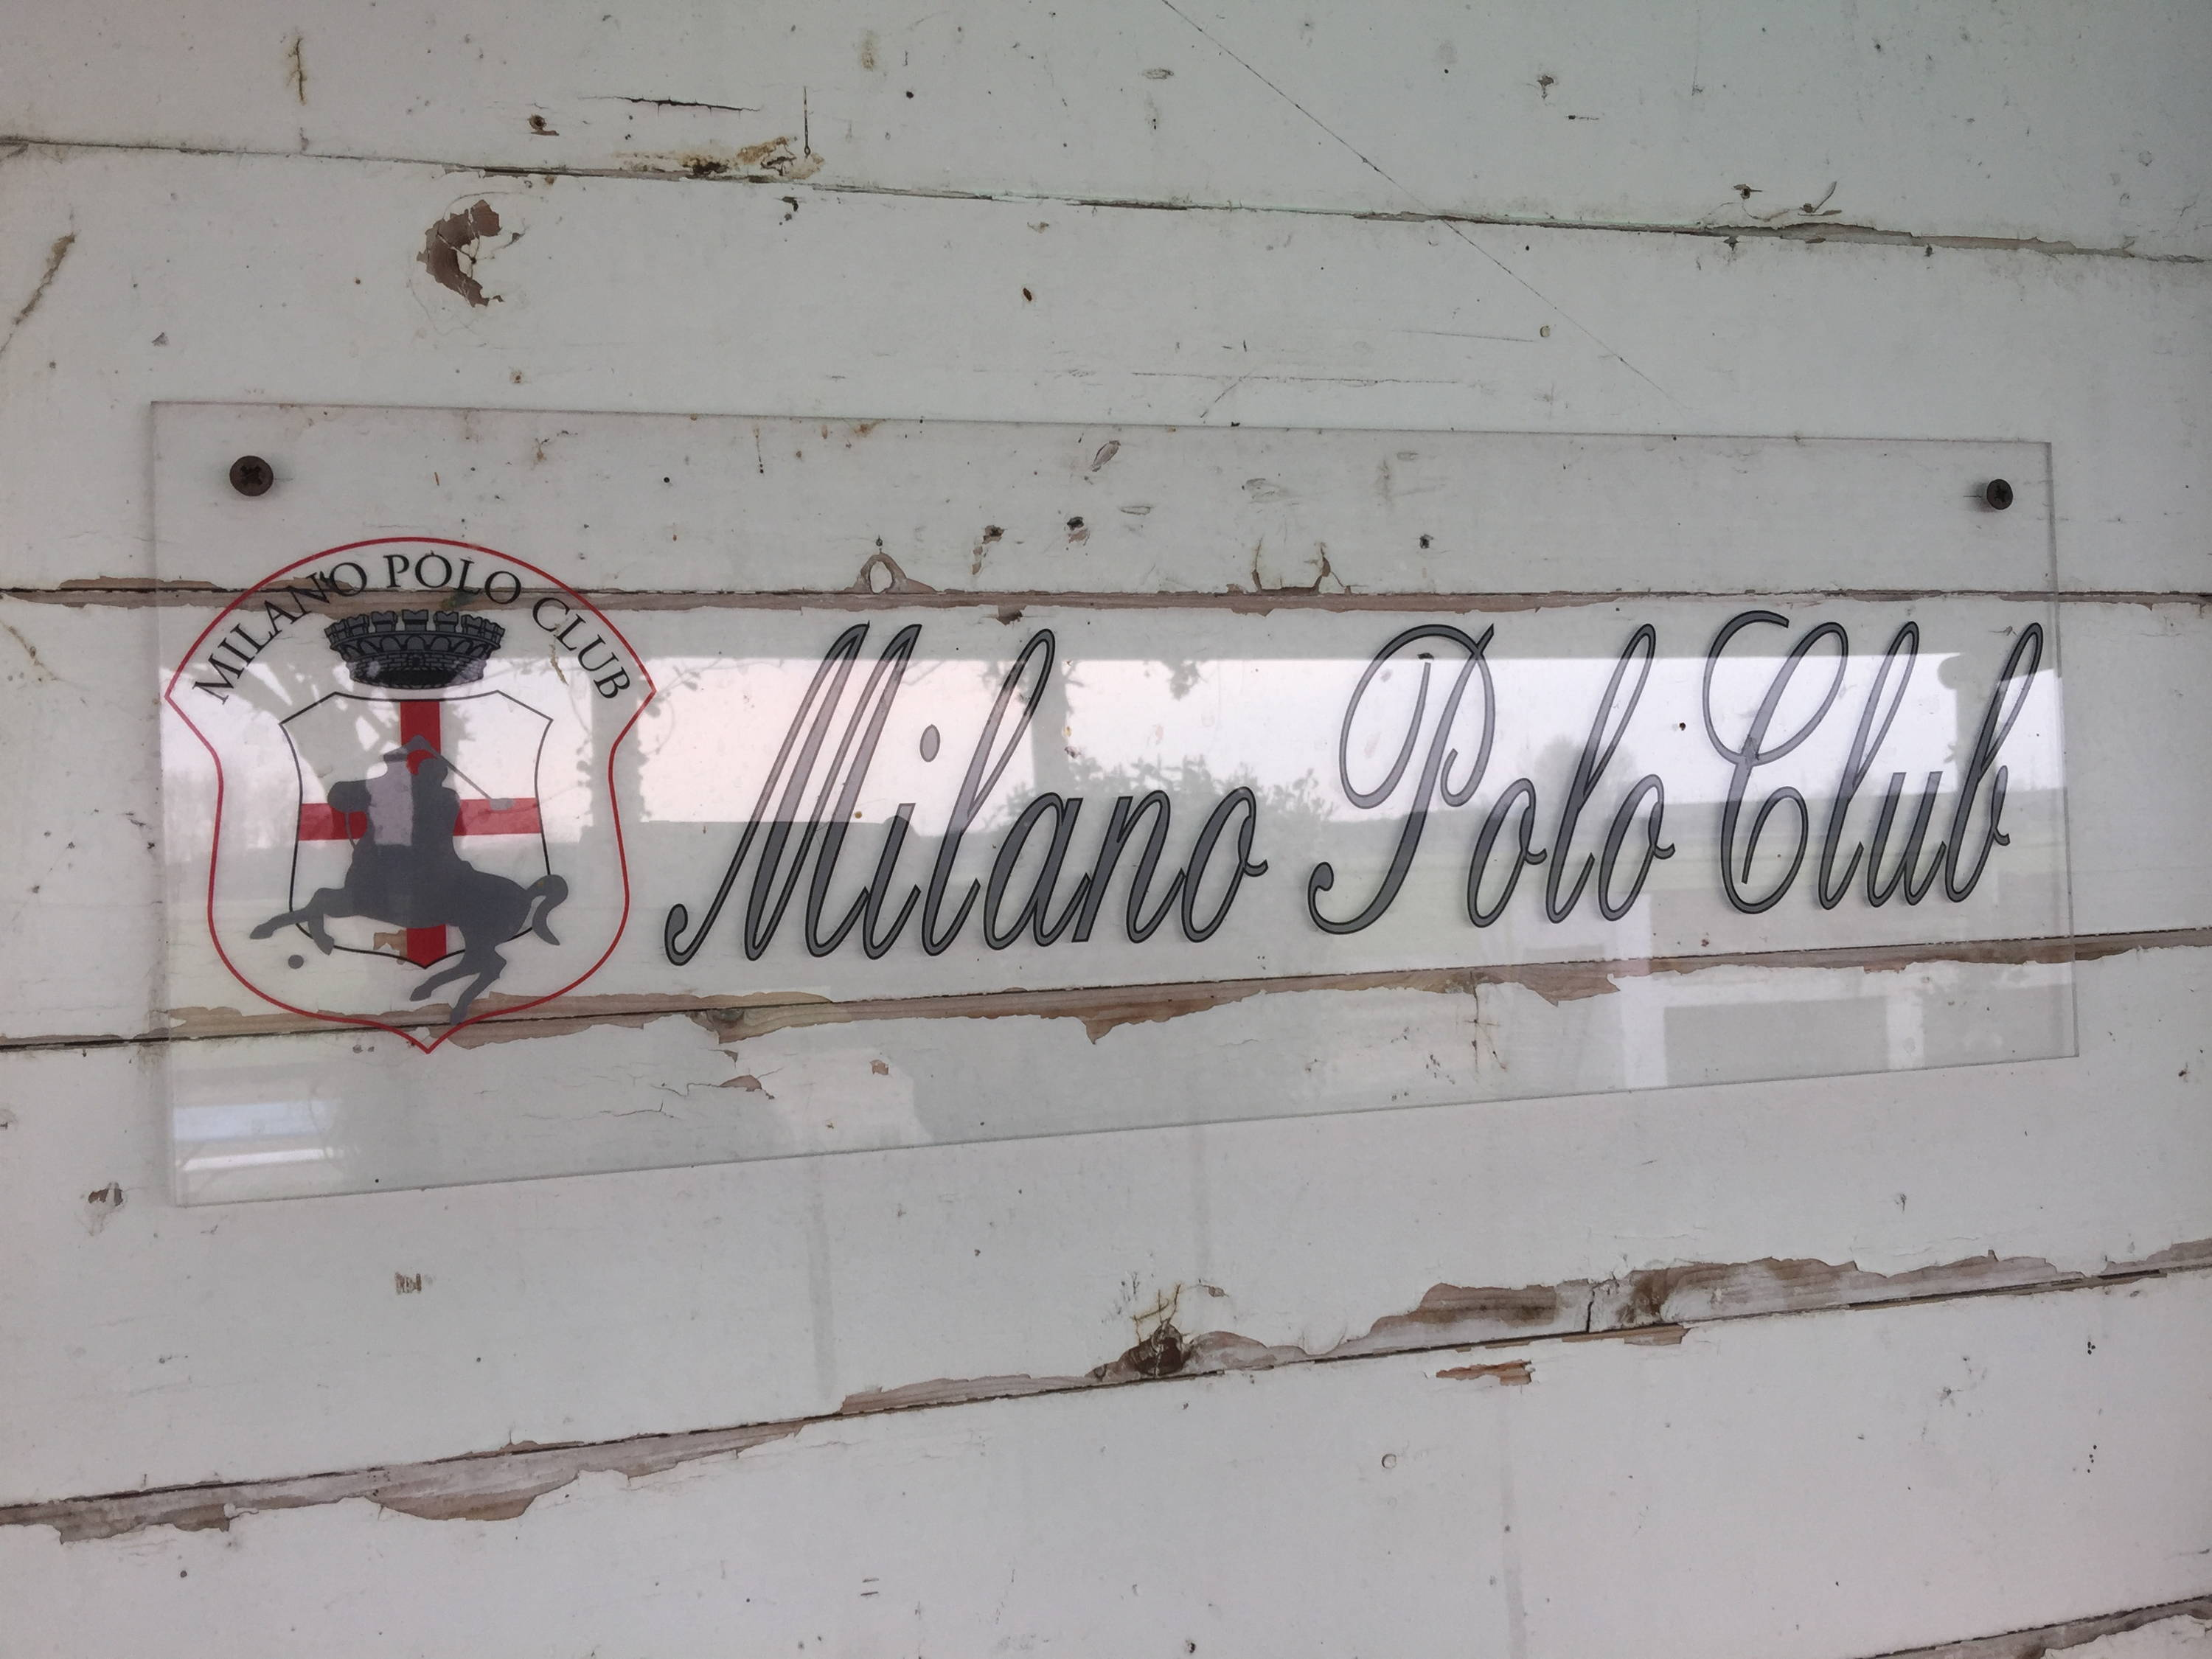 Sign of the Milano Polo Club